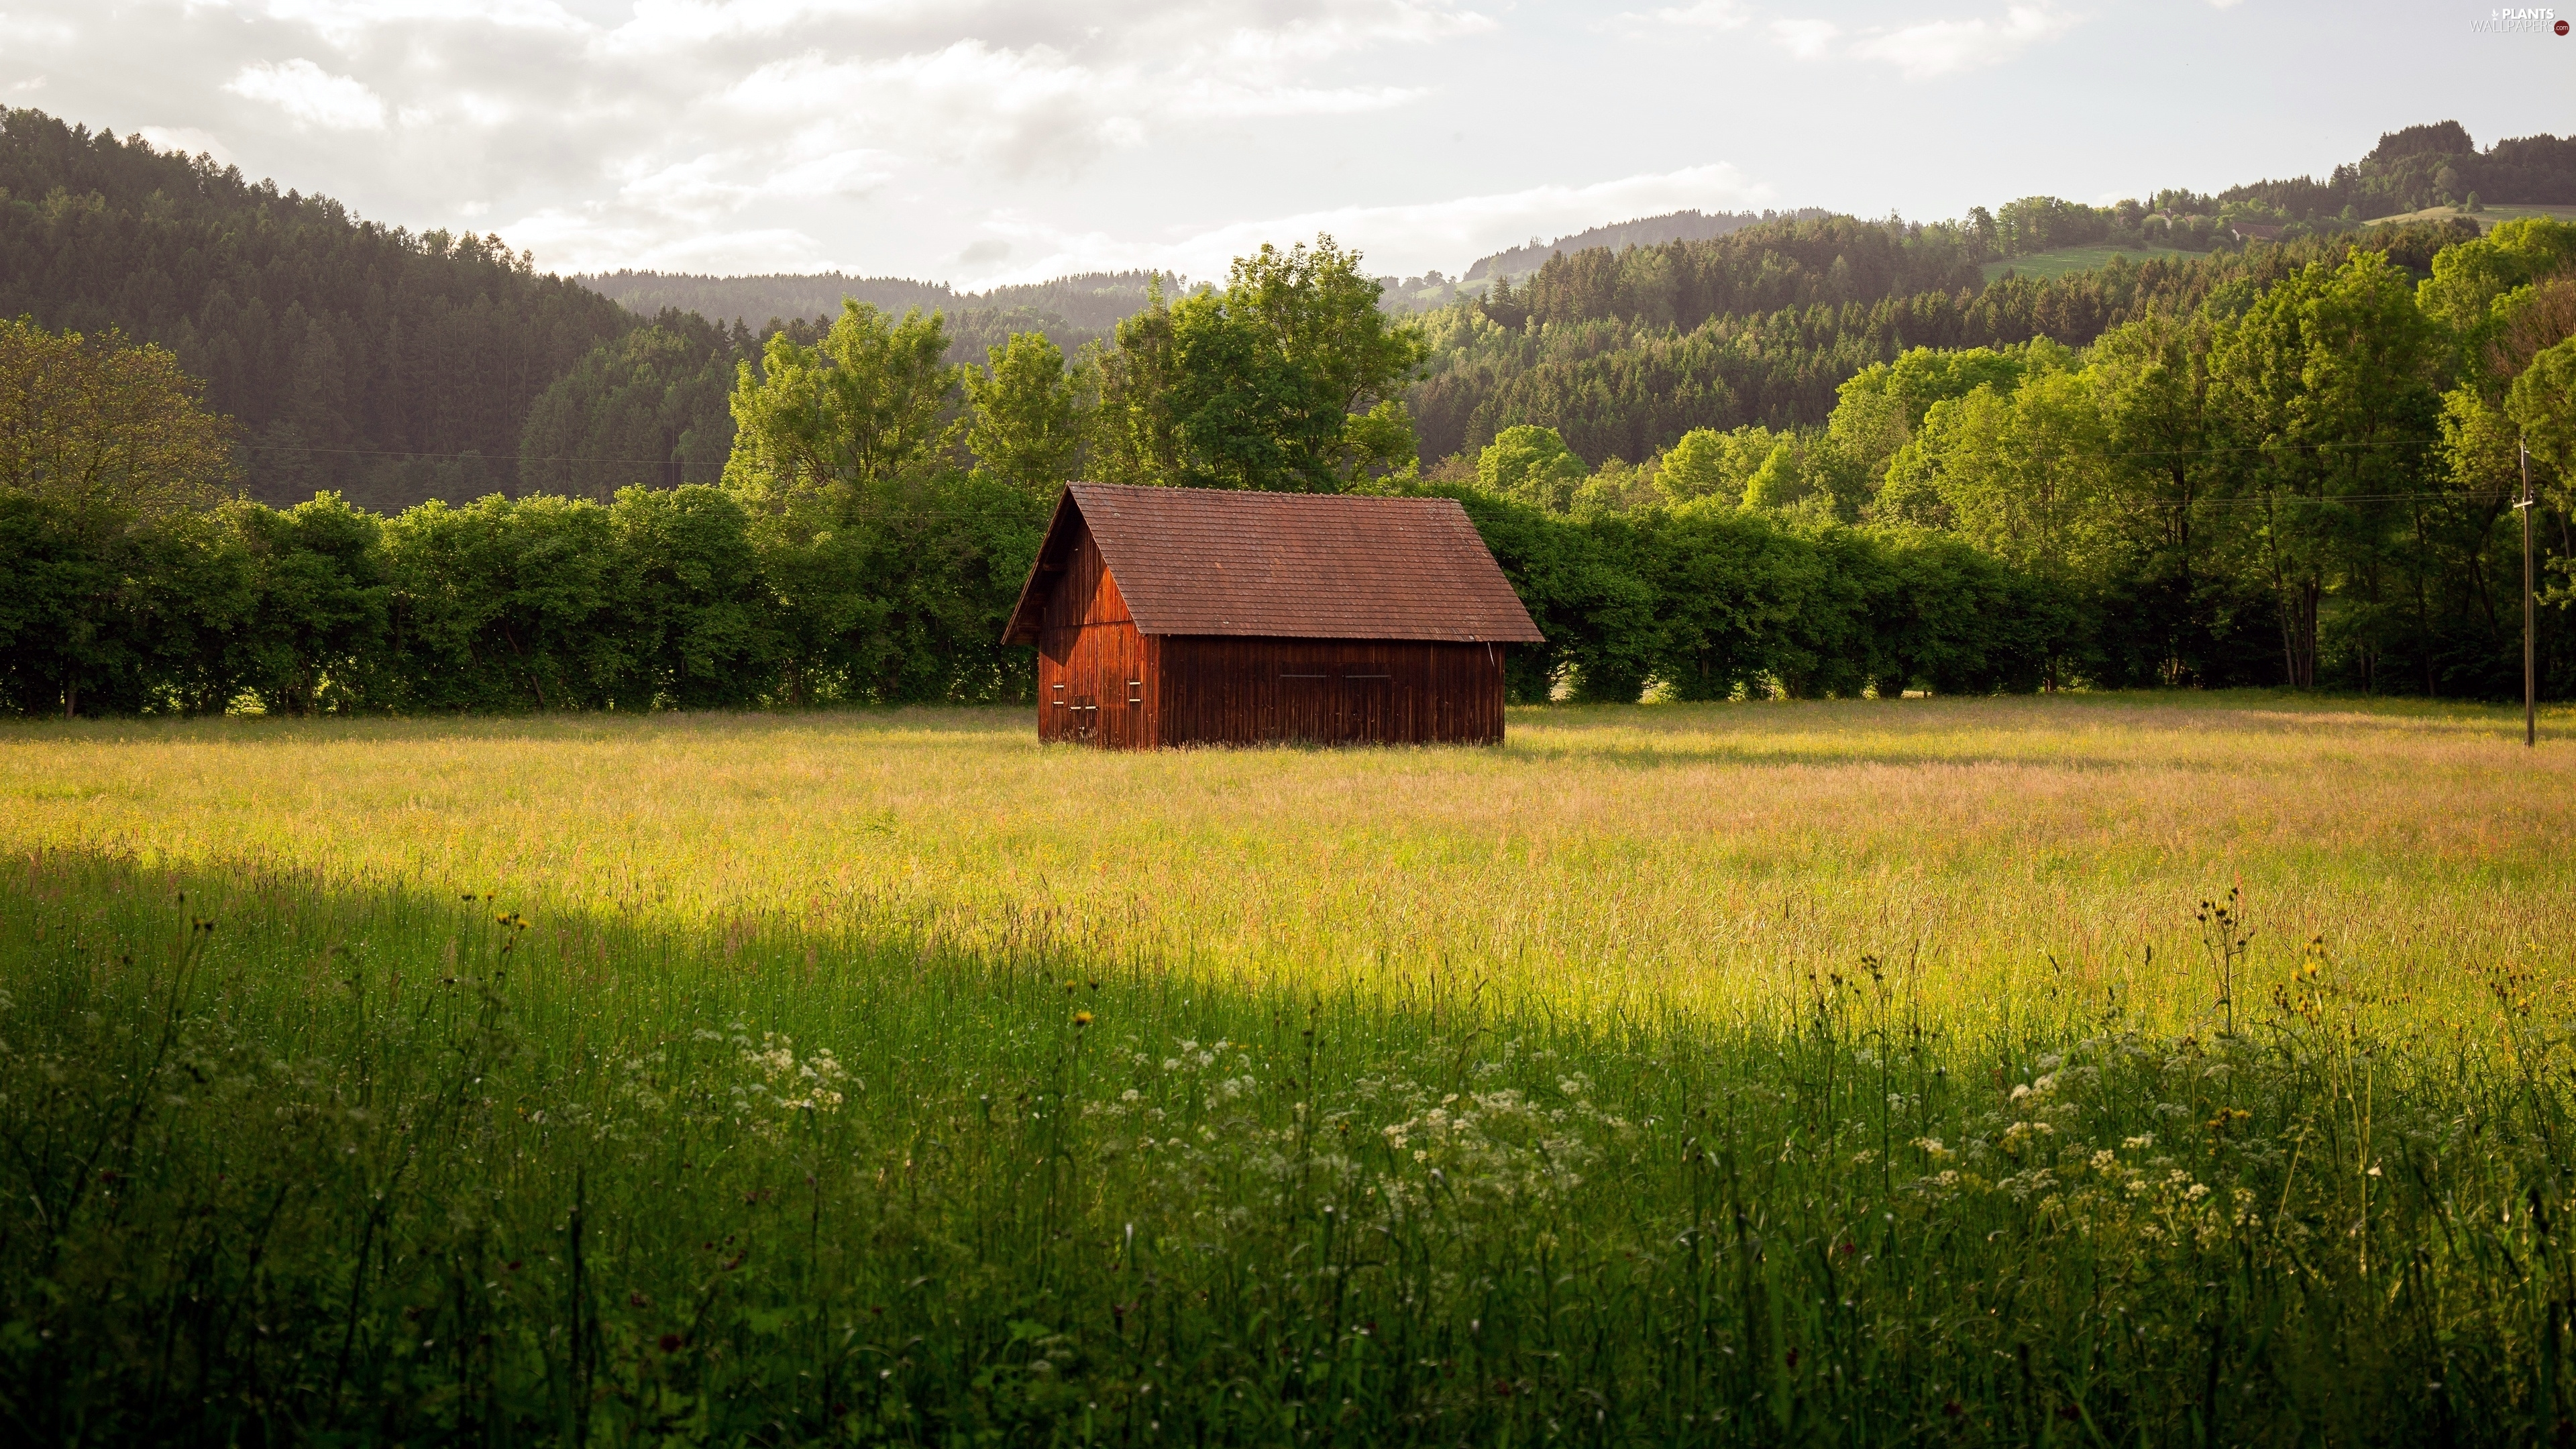 Meadow, Flowers, Mountains, woods, viewes, cote, house, trees